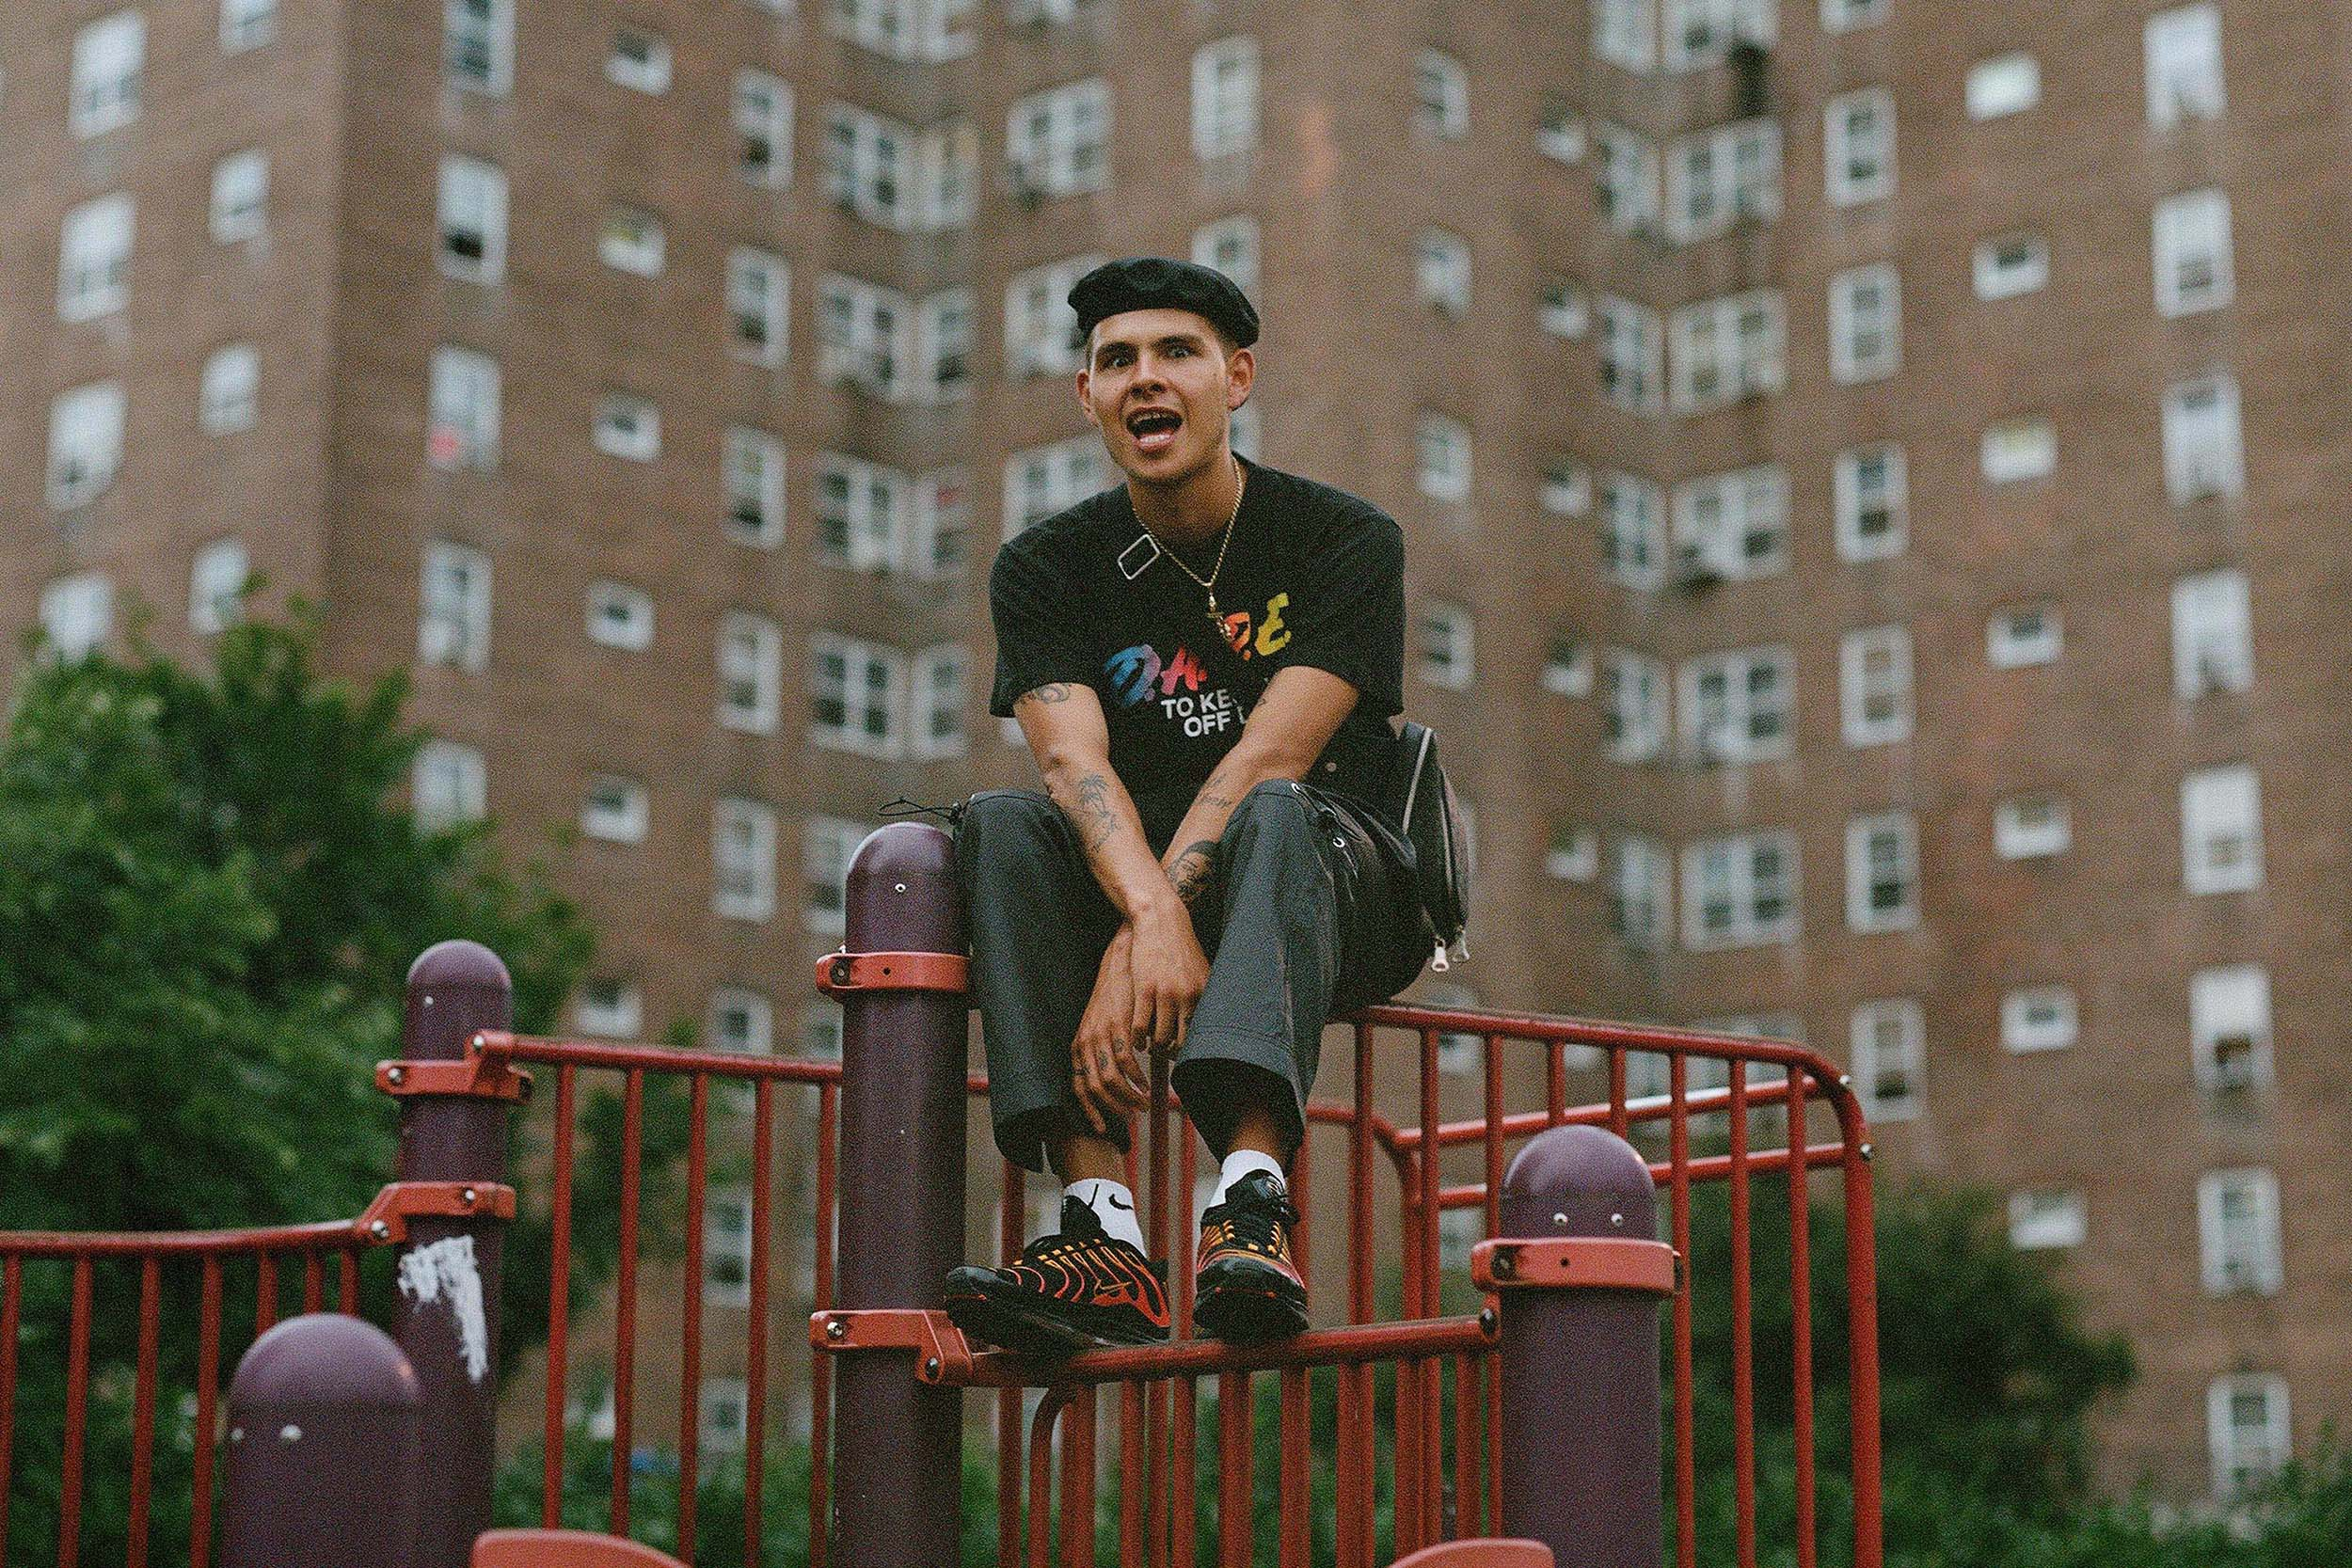 slowthai teams up with Mura Masa for 'Doorman'